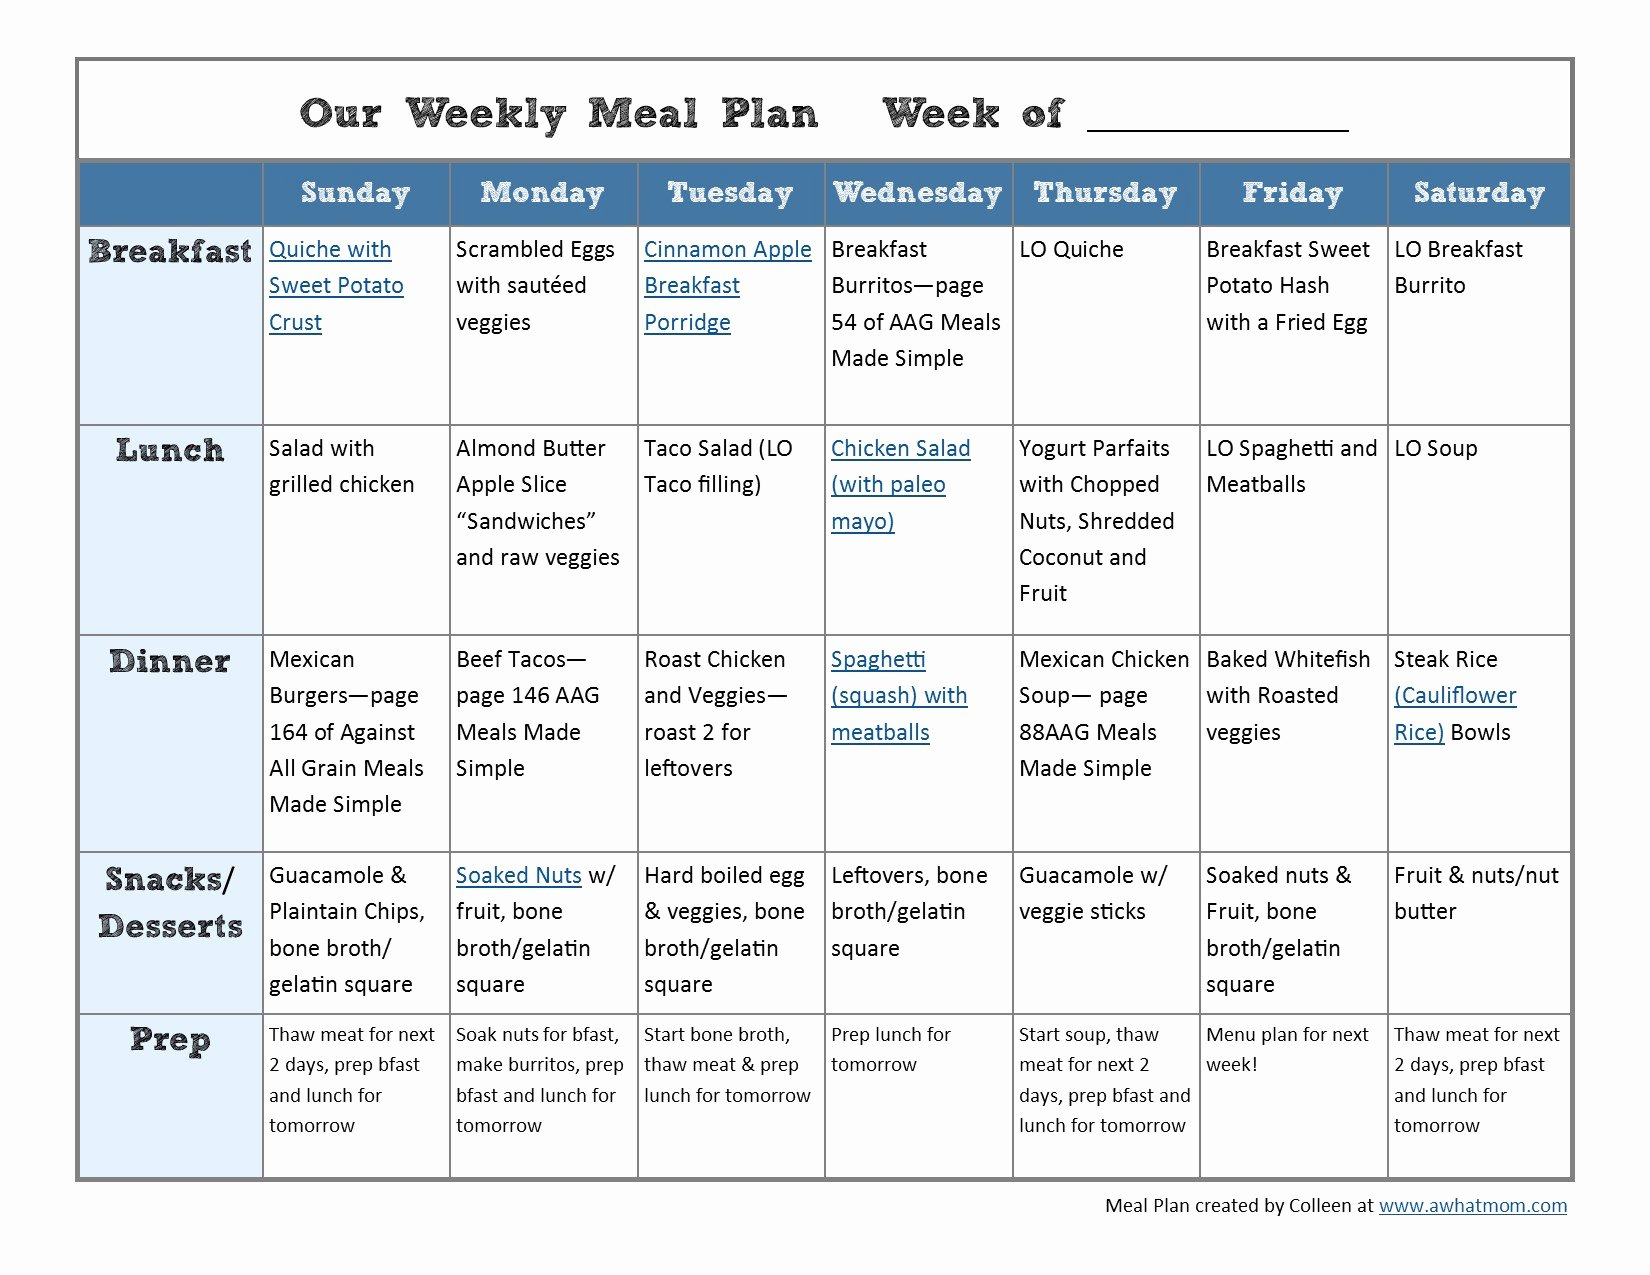 Whole 30 Meal Plan Template Awesome Meal Planning and whole30 Jump Start – A What Mom